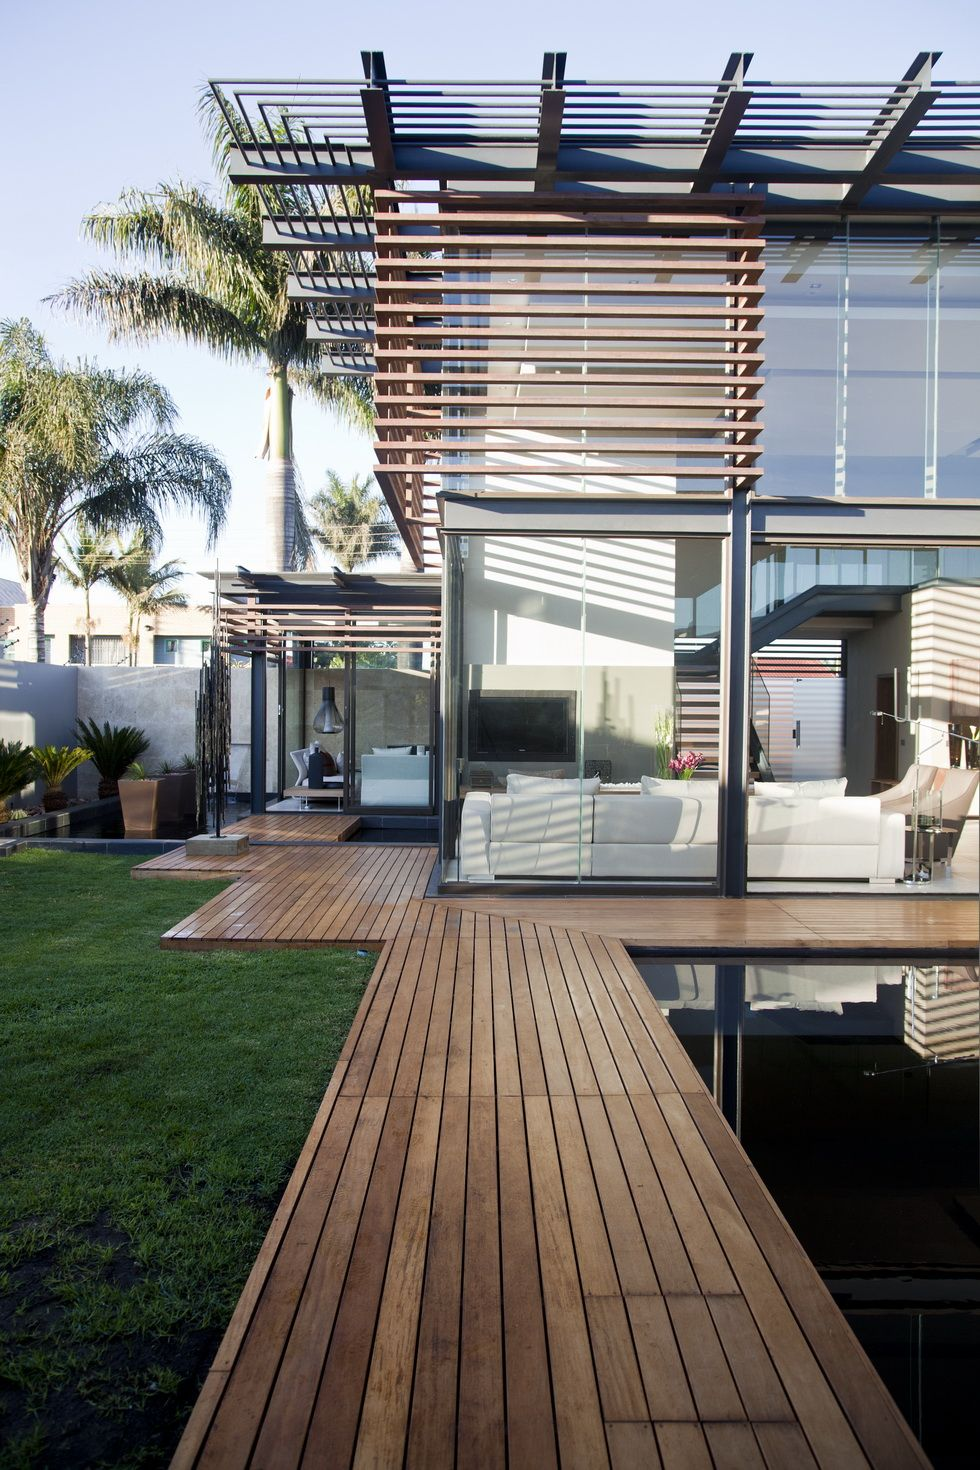 Architecture Modern Architecture Facade House: Nico Van Der Meulen Architects #Design #Contemporary #Design